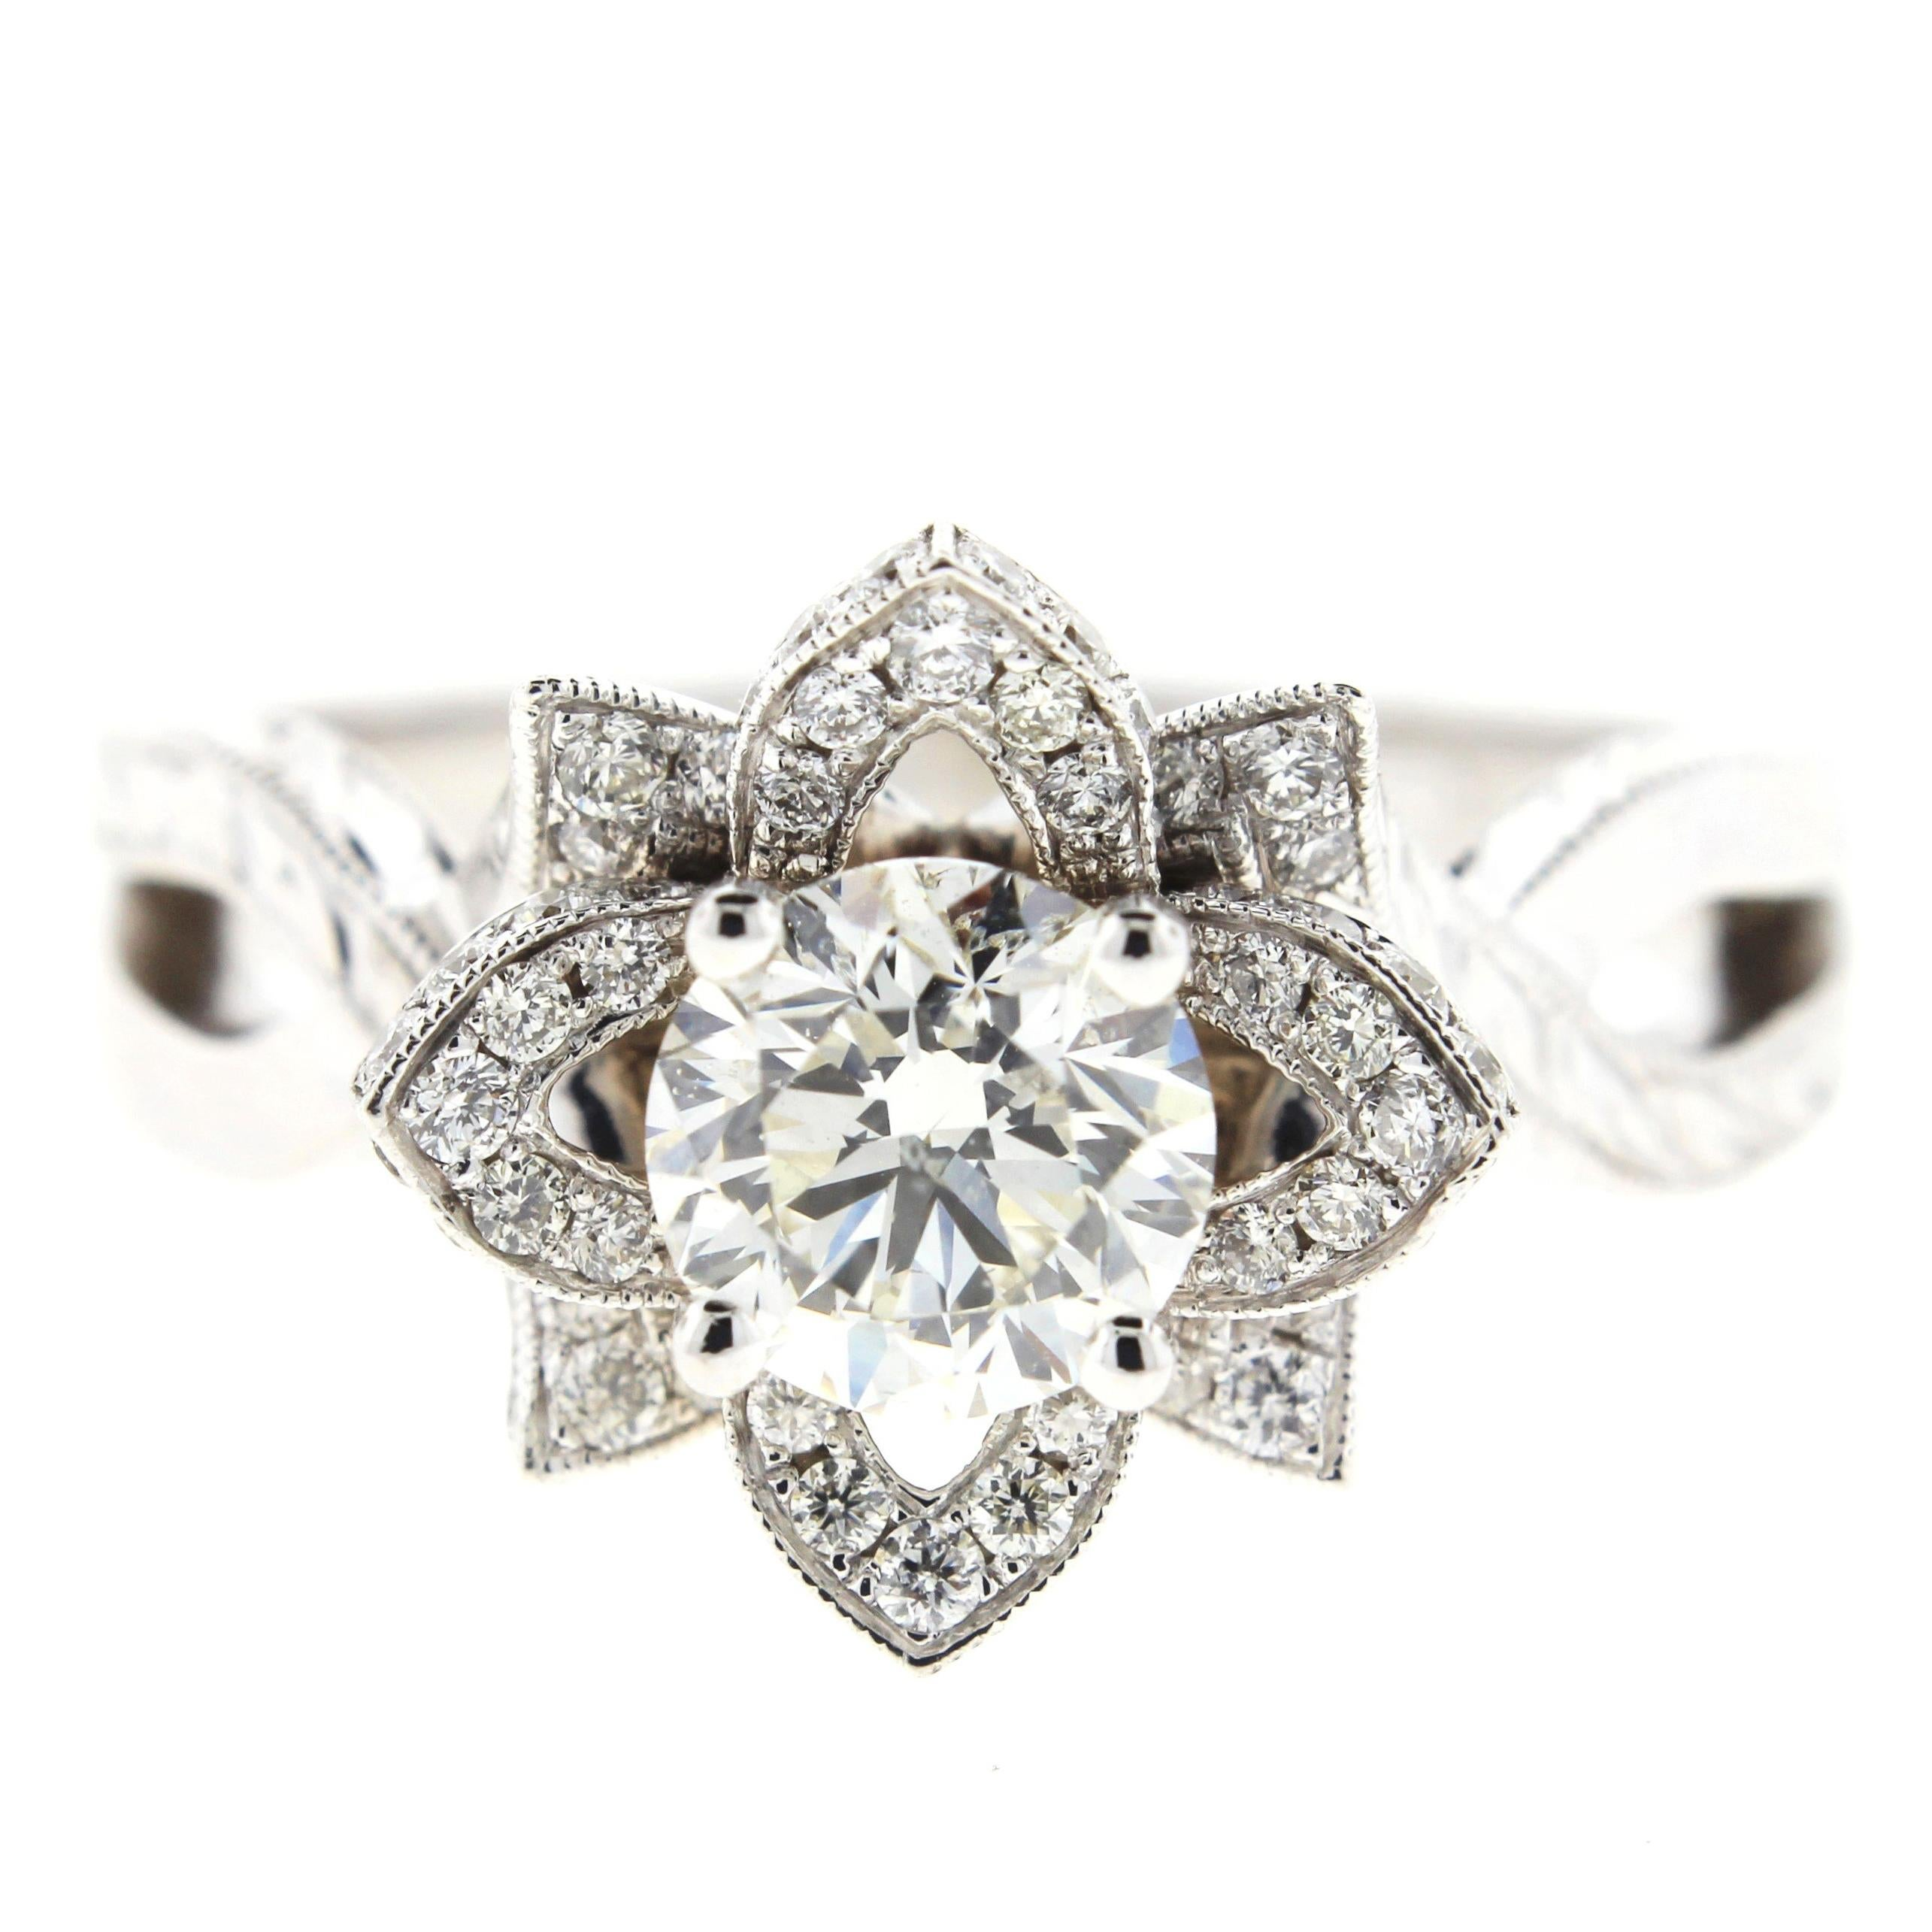 Floral Inspired Diamond Engagement Ring 'GIA'